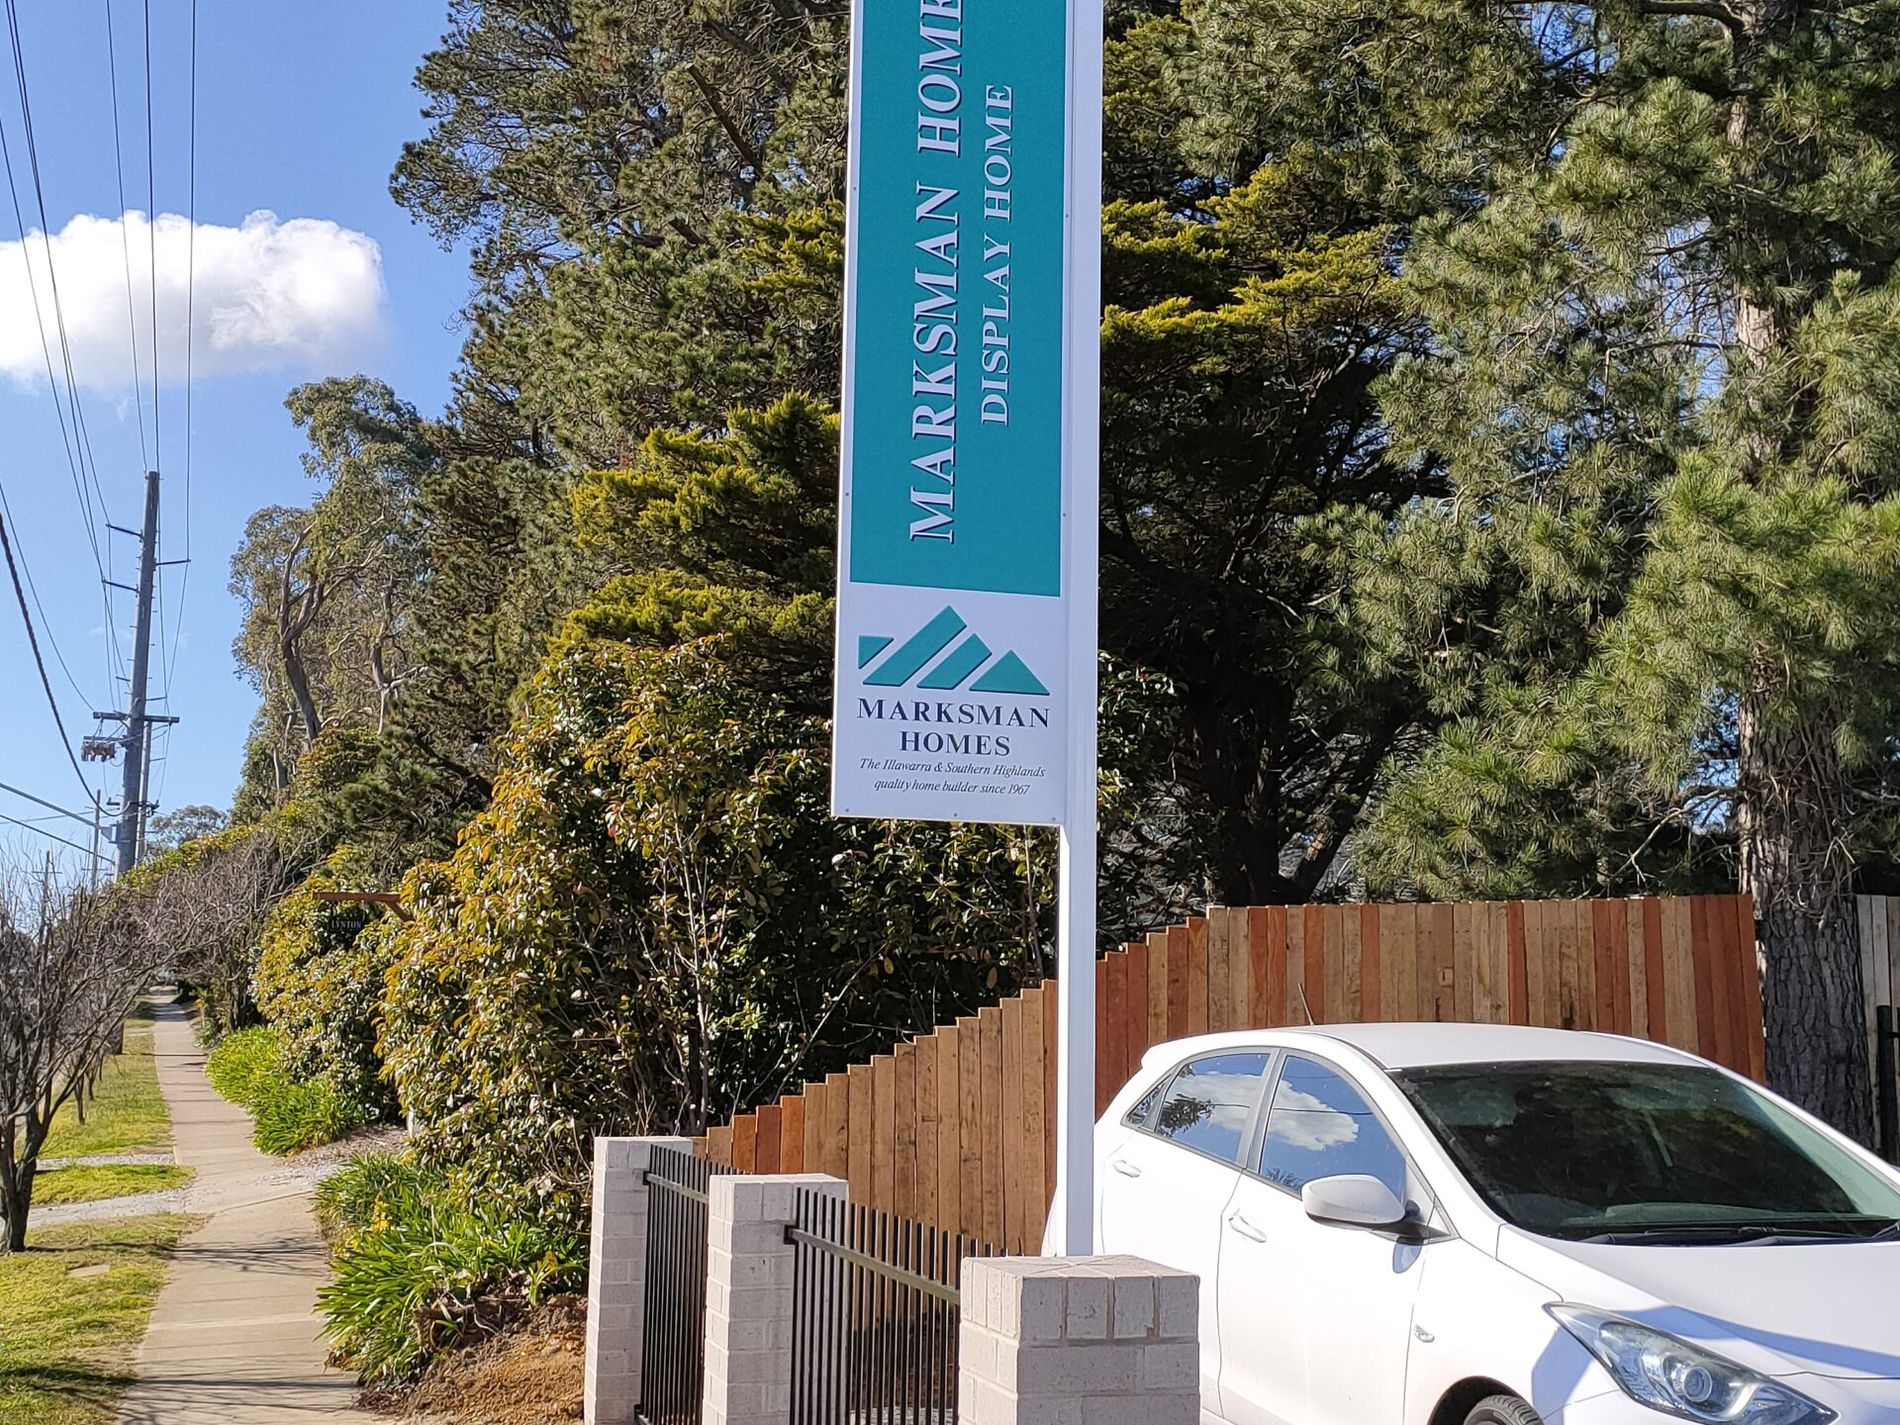 Wollongong Signage Business For Sale